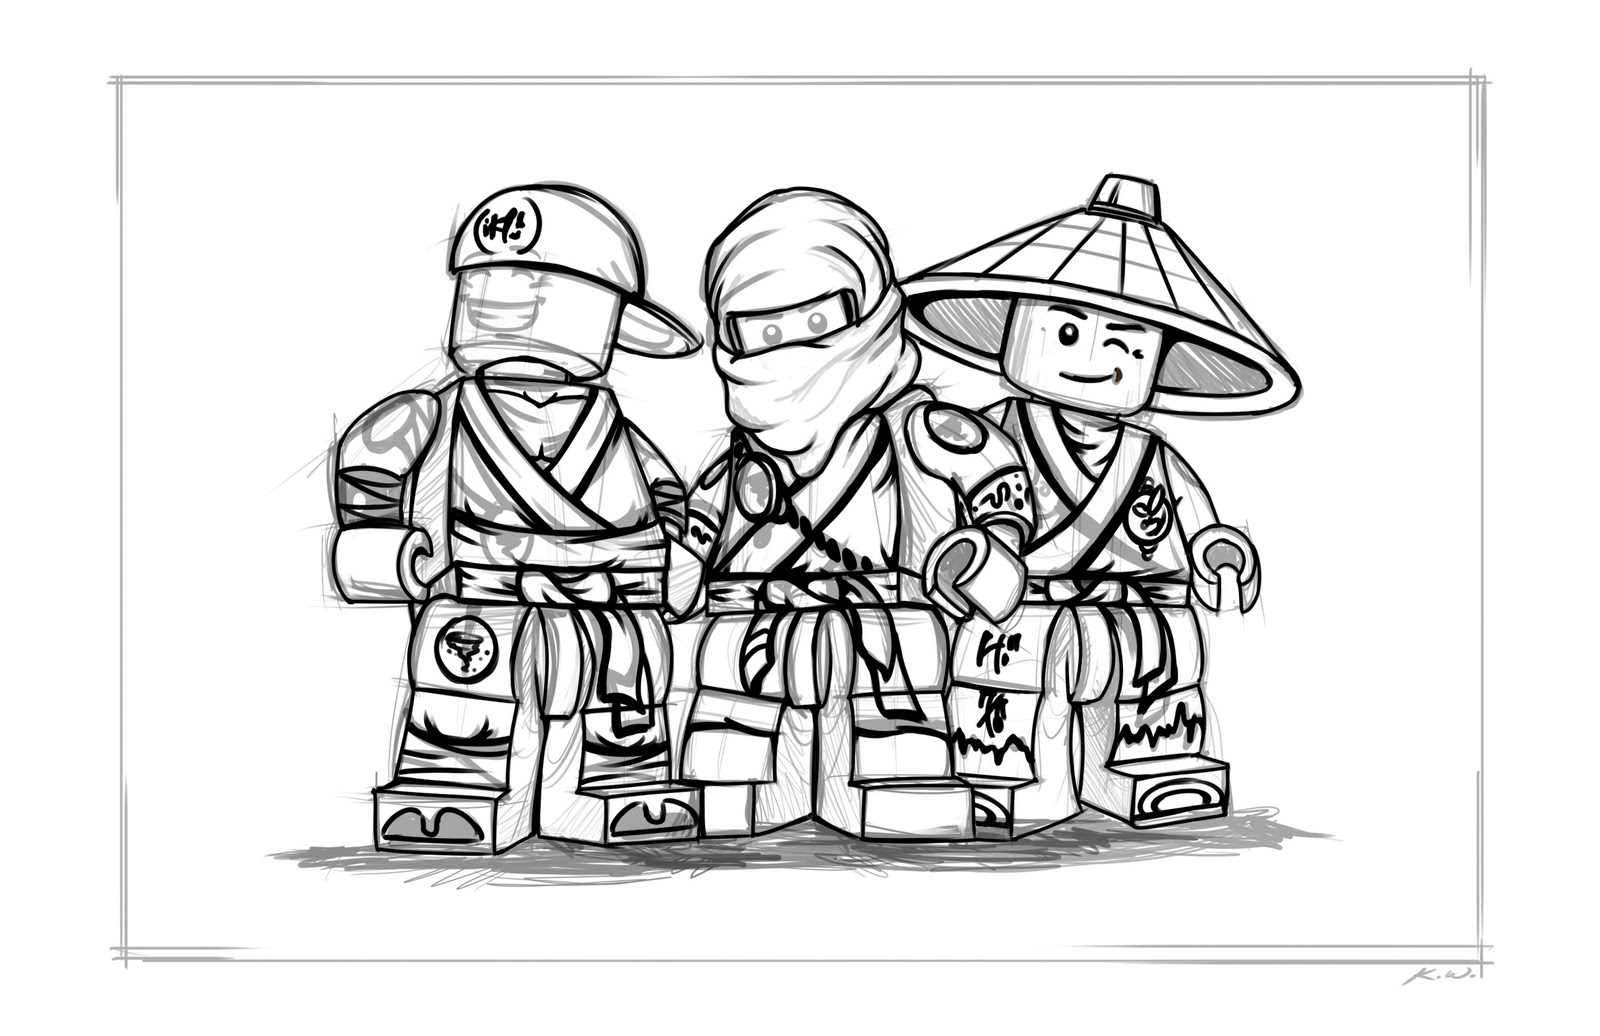 Lego Ninjago Coloring Pages Coloring Kids Lego Ninjago Coloring Pages